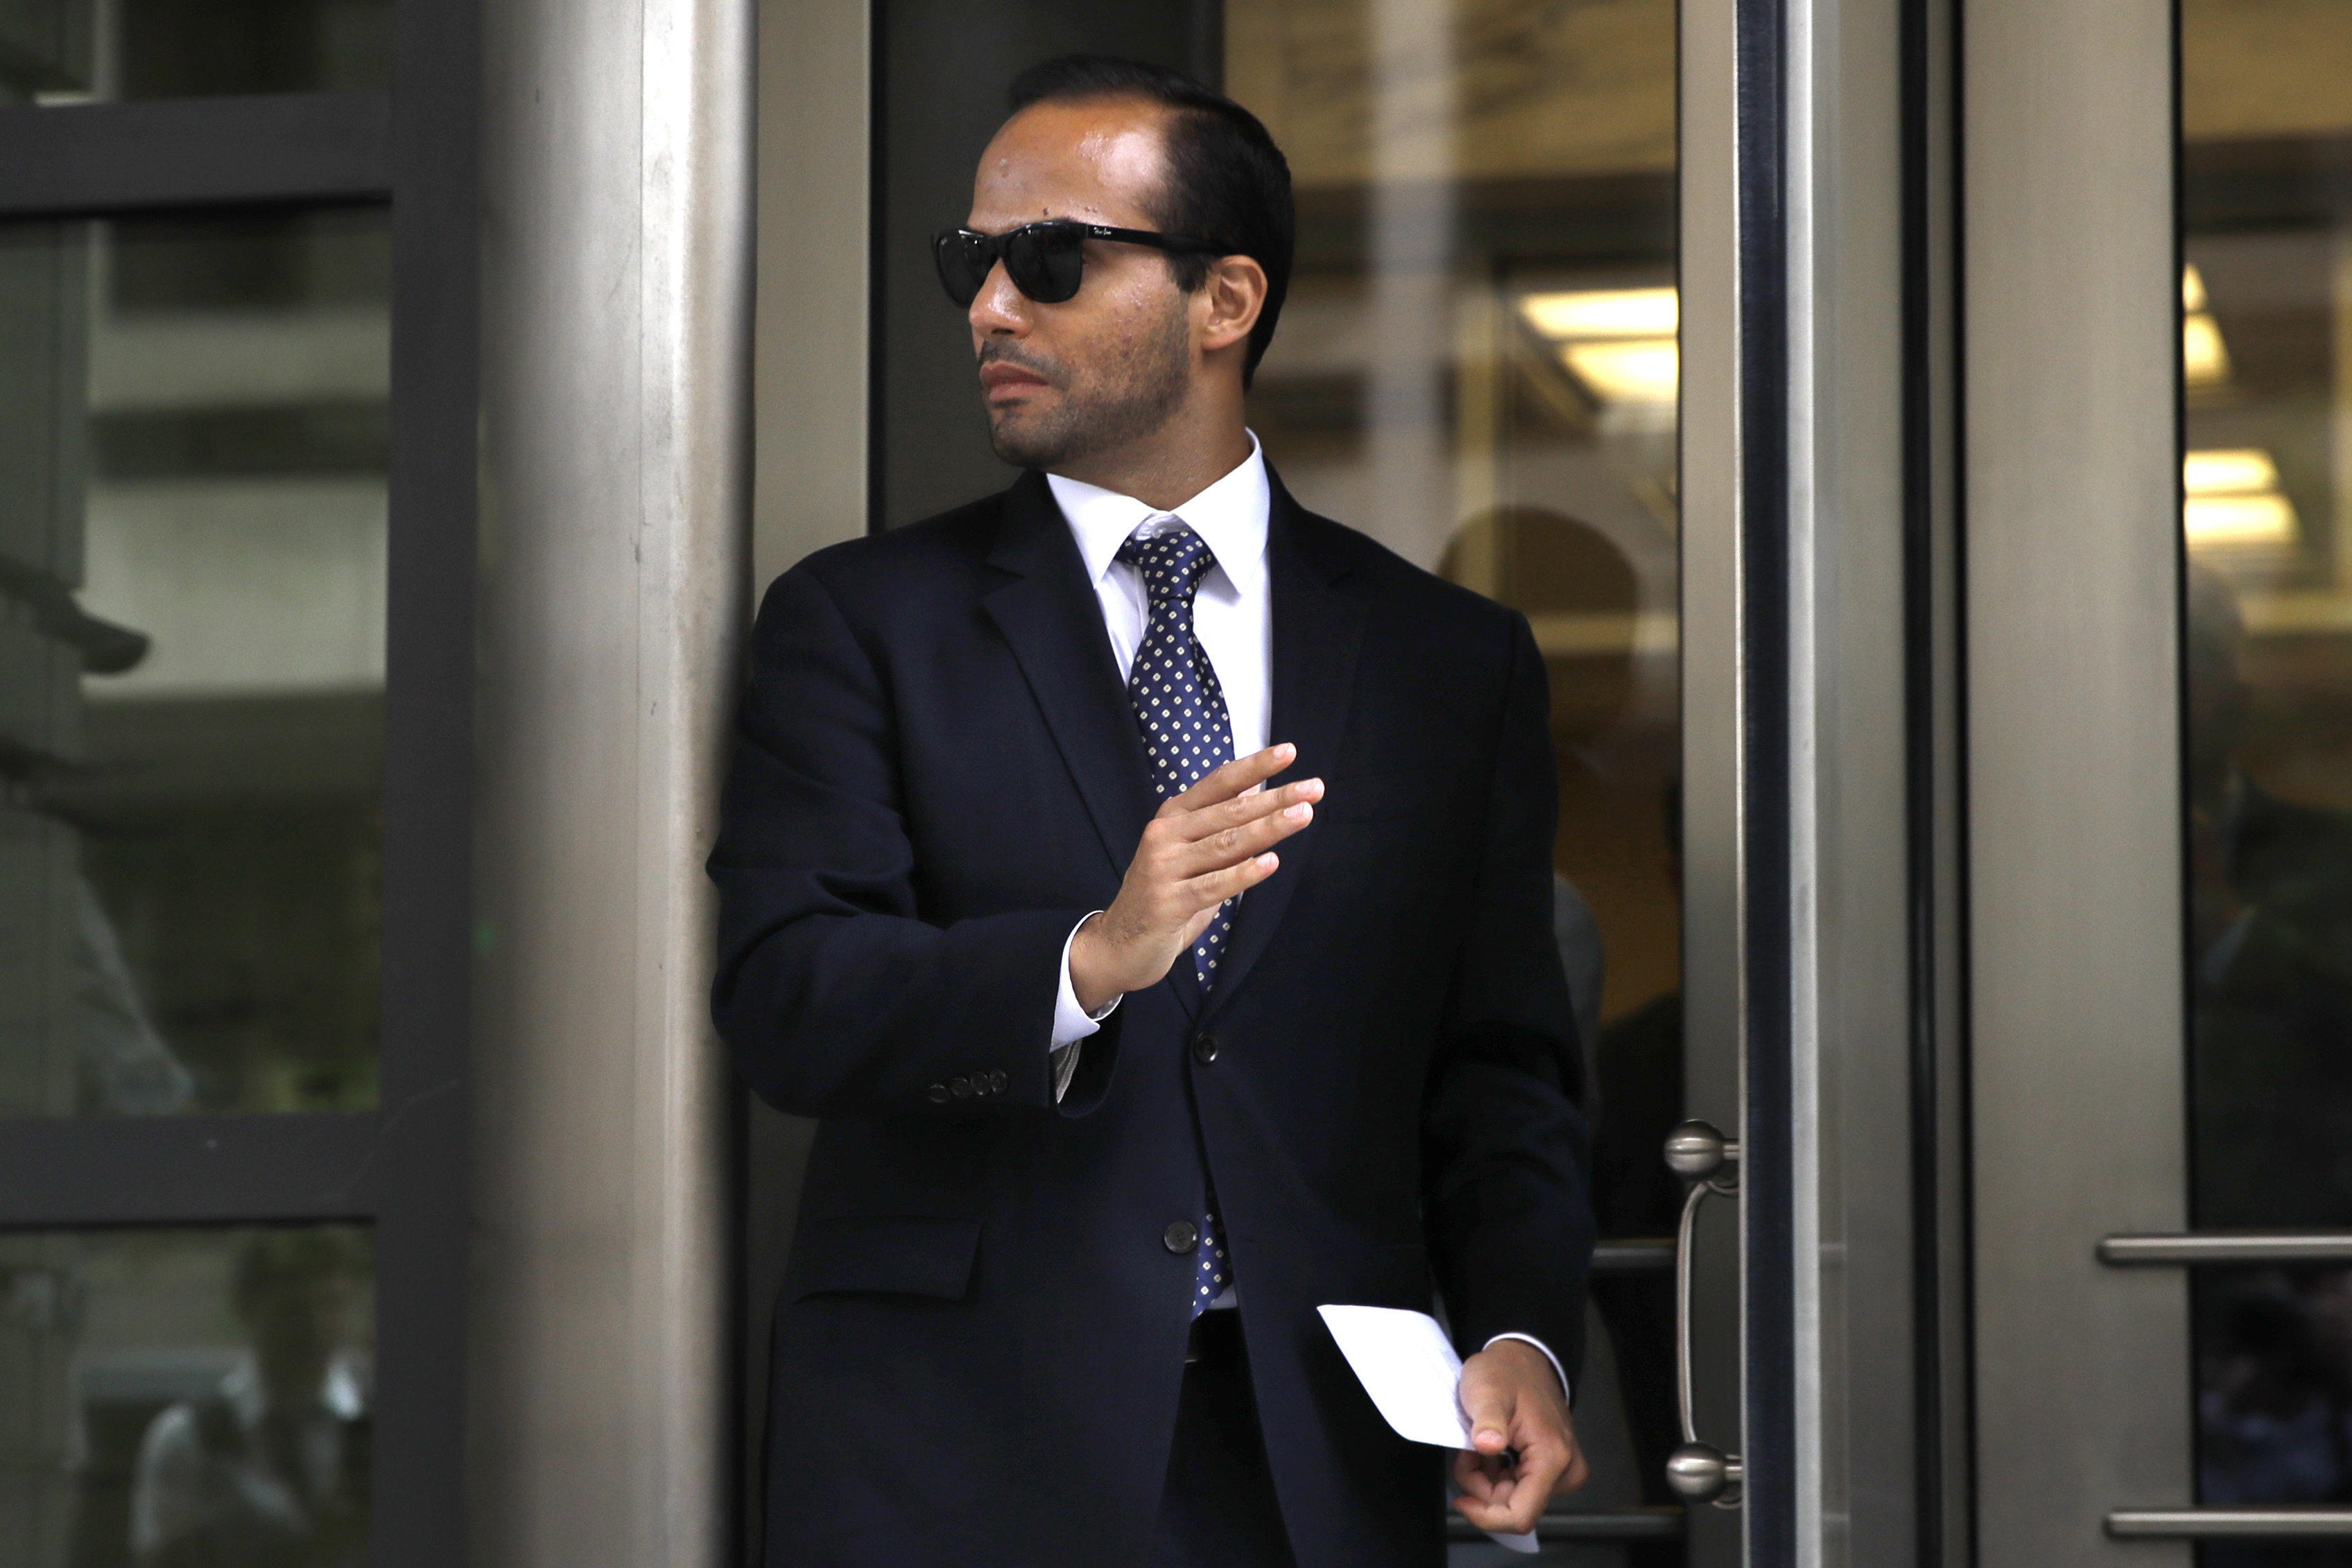 Former Donald Trump presidential campaign foreign policy adviser George Papadopoulos, who triggered the Russia investigation, and who pleaded guilty to one count of making false statements to the FBI, leaves federal court after he was sentenced to fourteen days in prison, Friday, Sept. 7, 2018, in Washington. (AP Photo/Jacquelyn Martin)